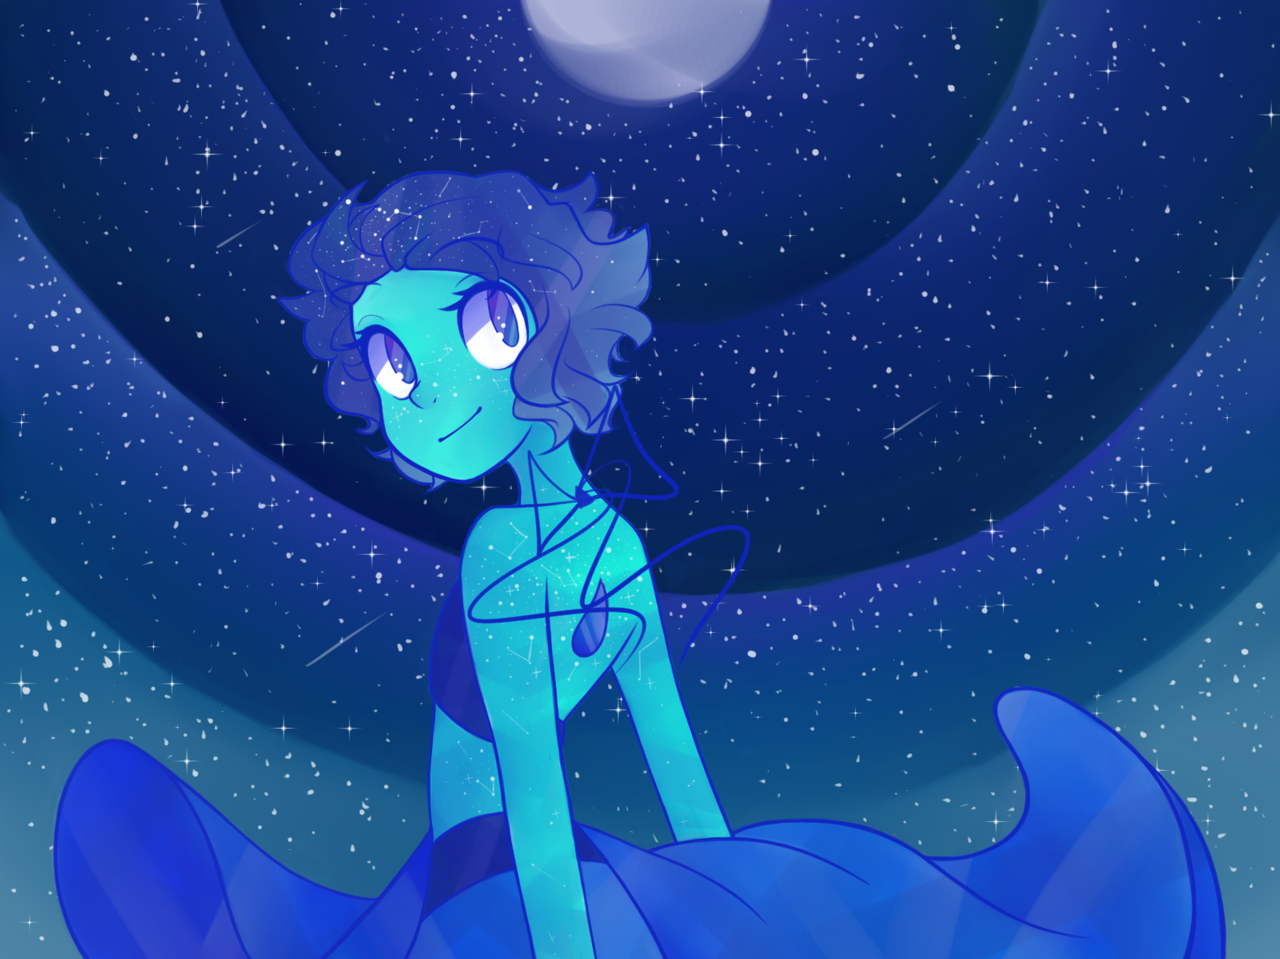 More lapis because I'm gay